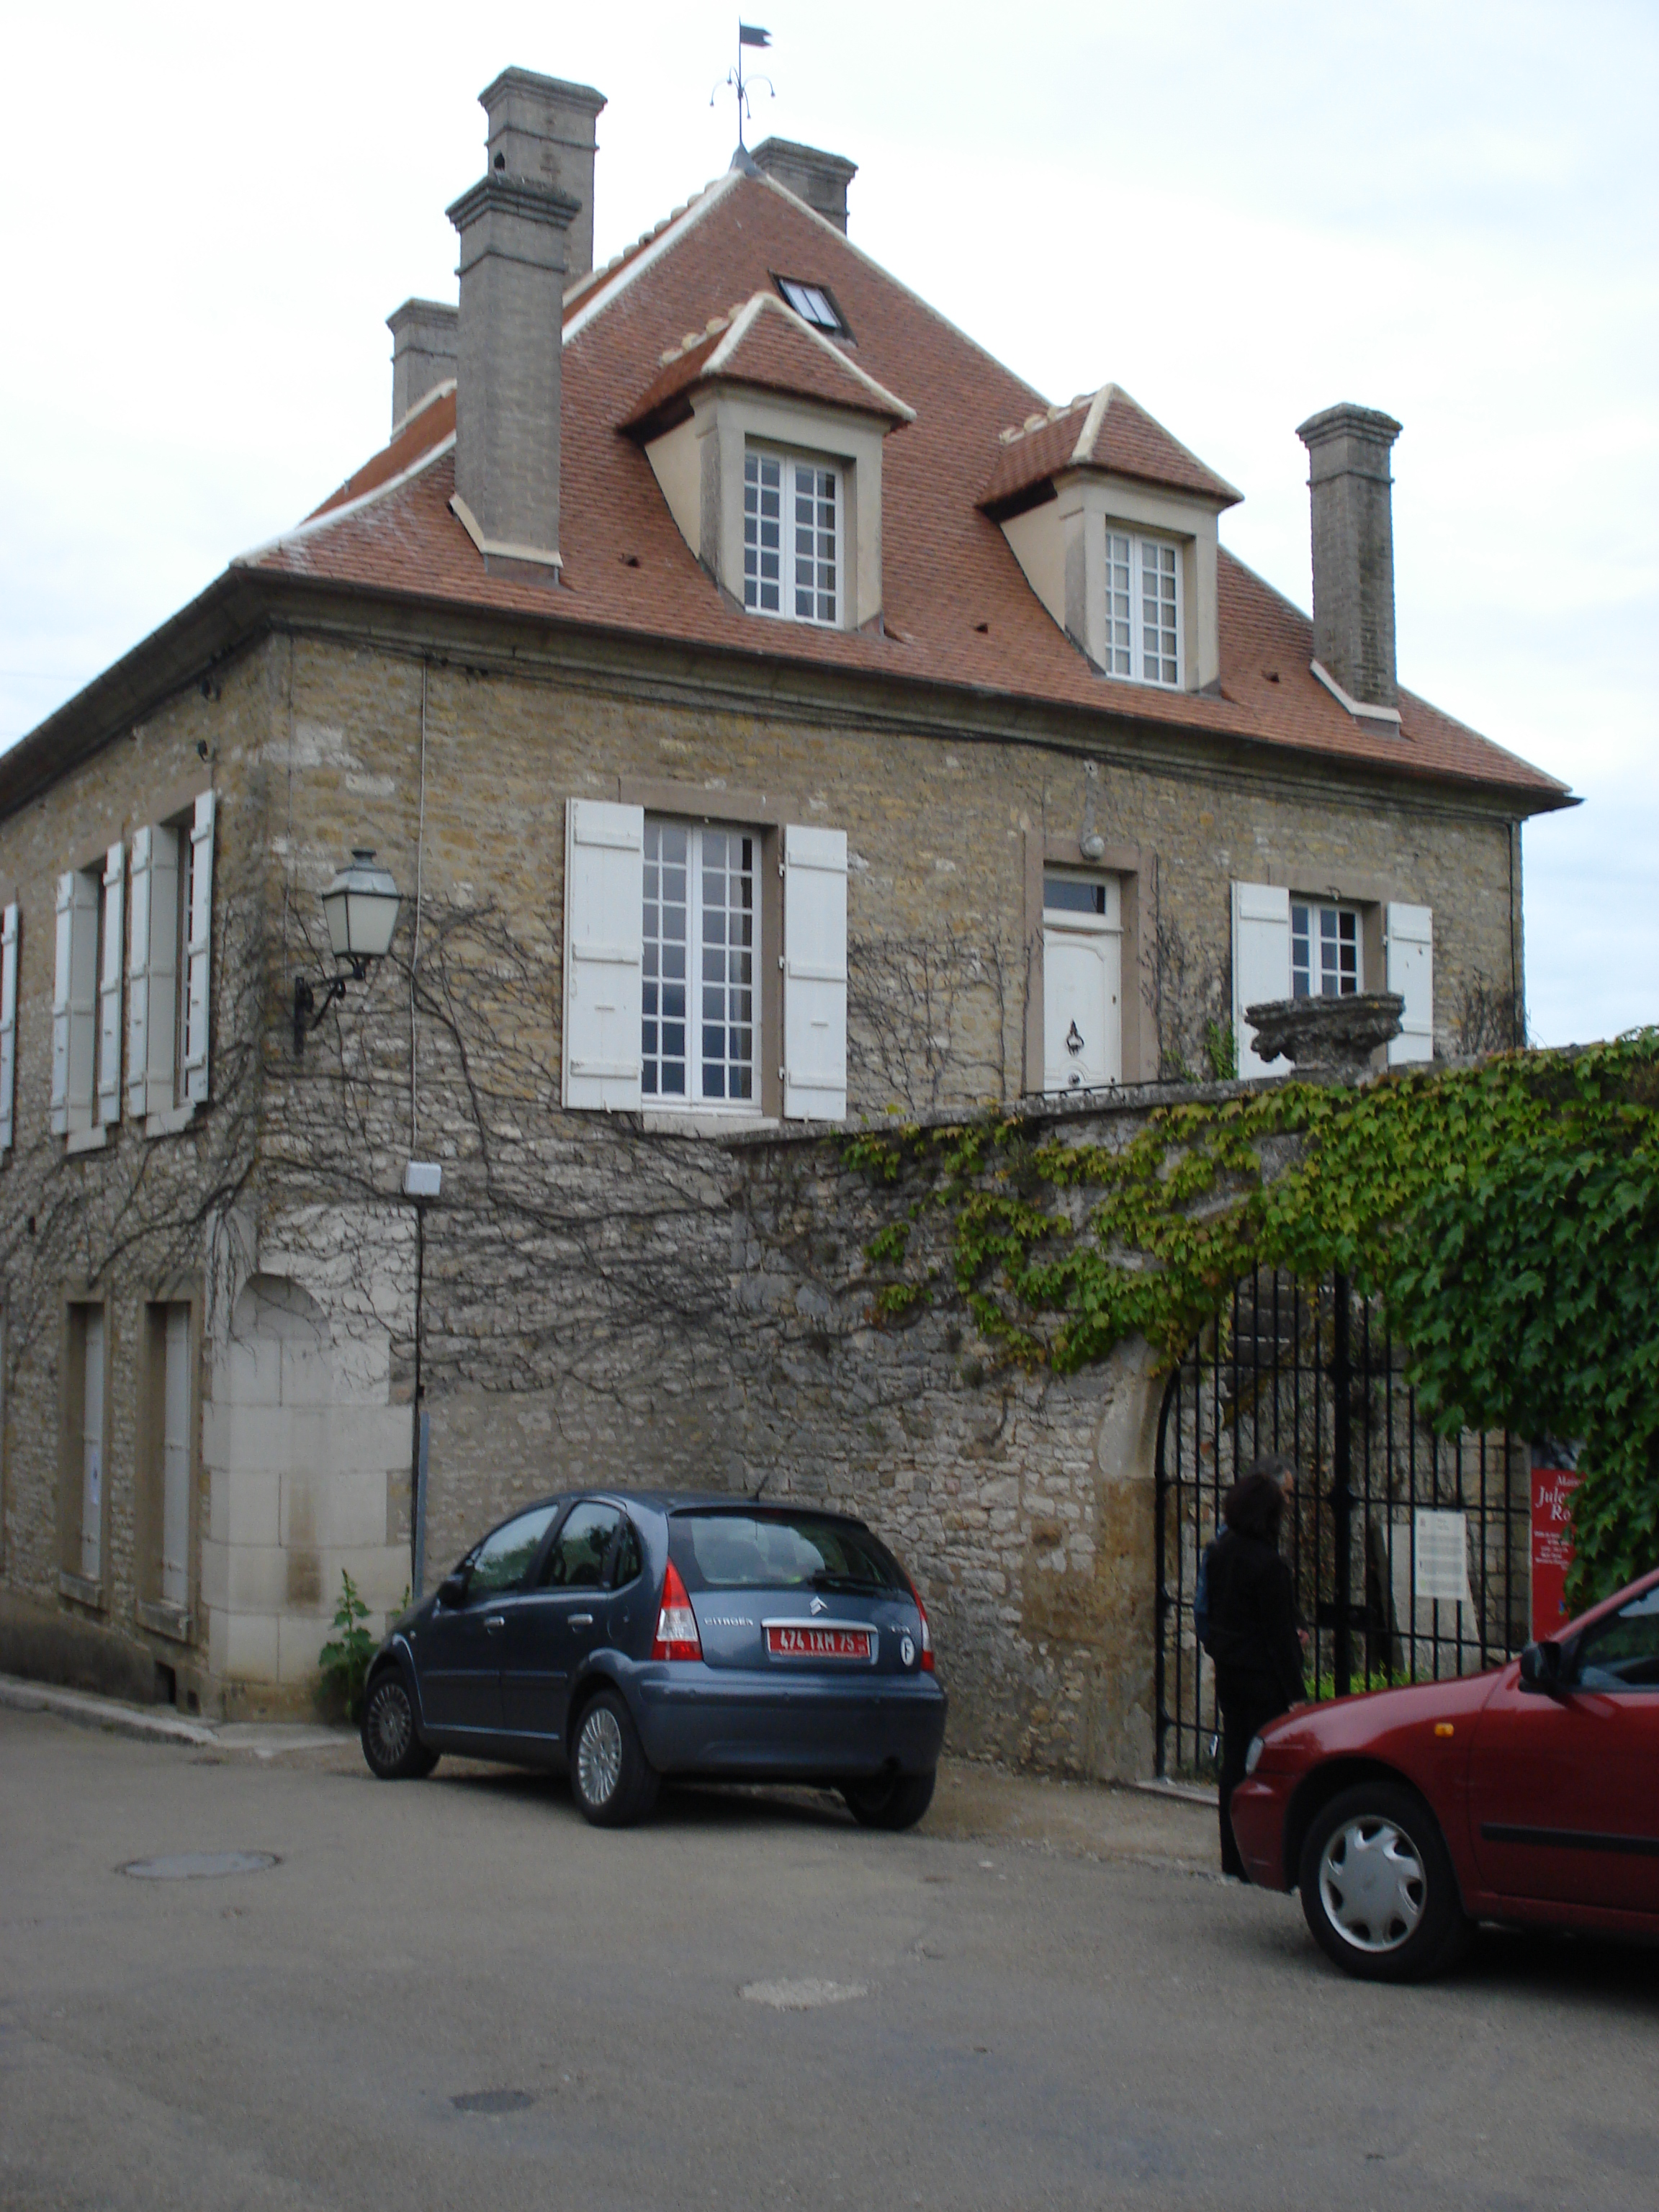 BUILDING OF THE CHEMIN DU ROY